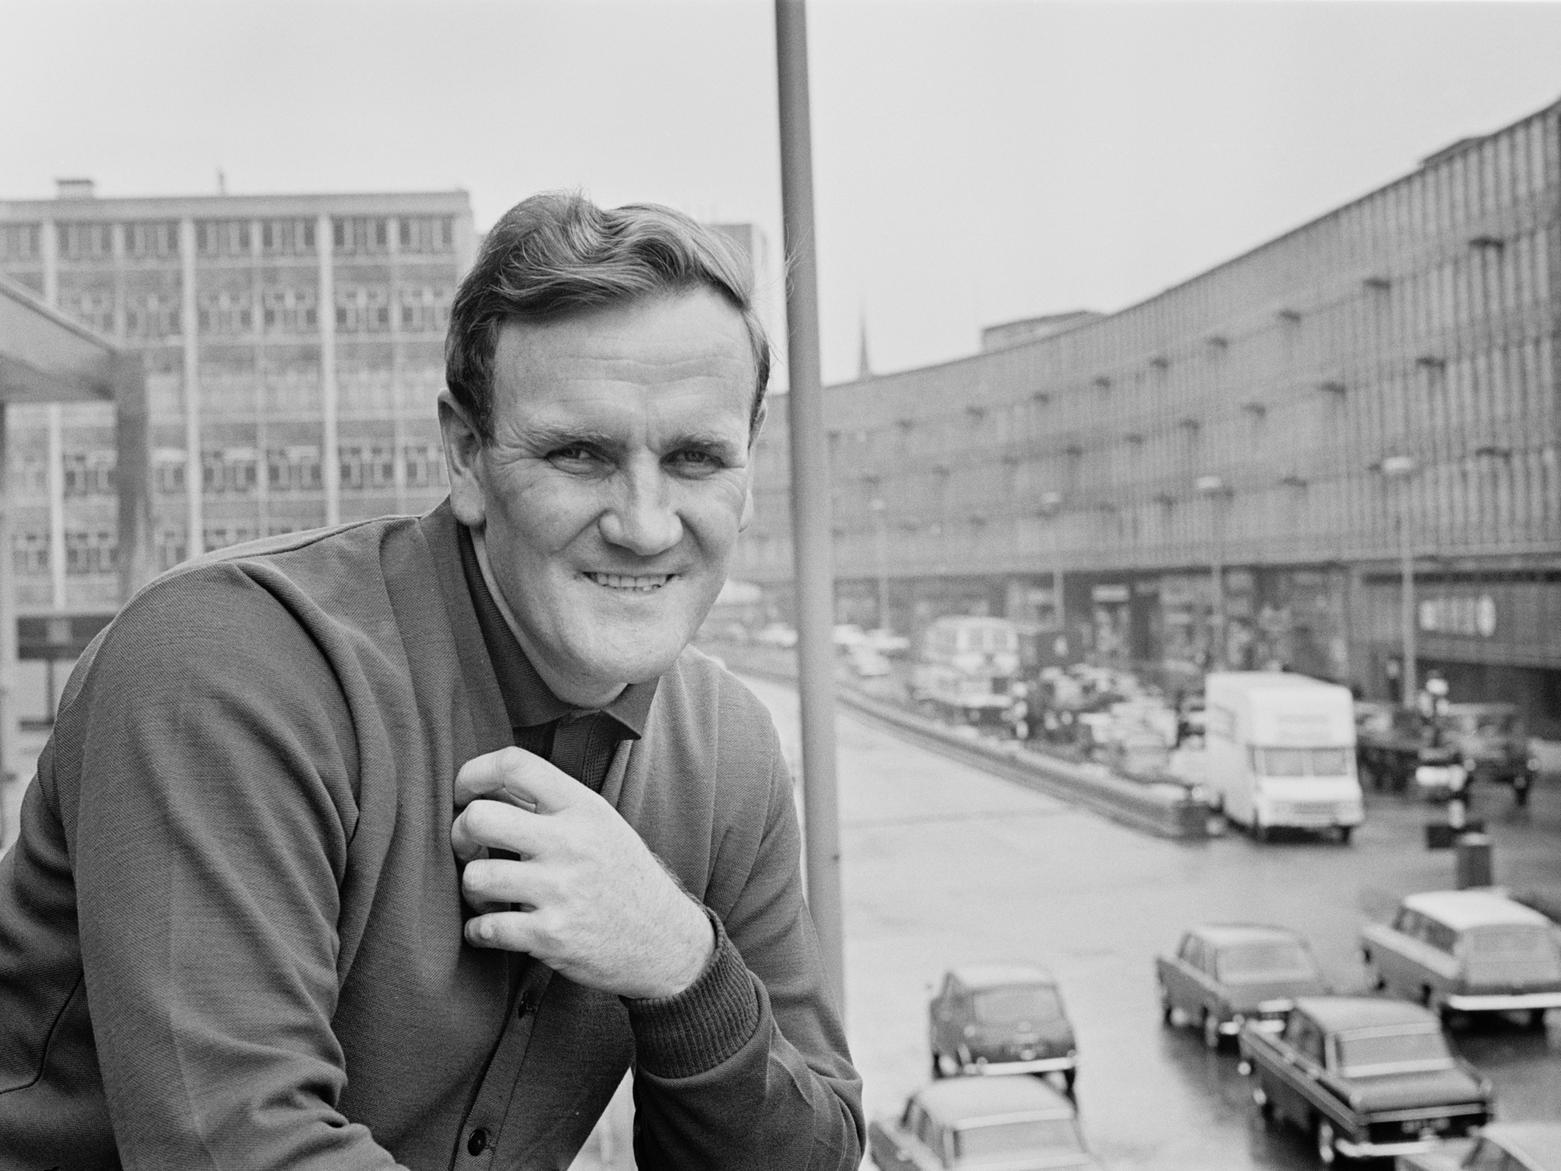 Leeds United in the 1950s & 60s: The photos of John Charles, Don Revie & Billy Bremner that Whites fans will love